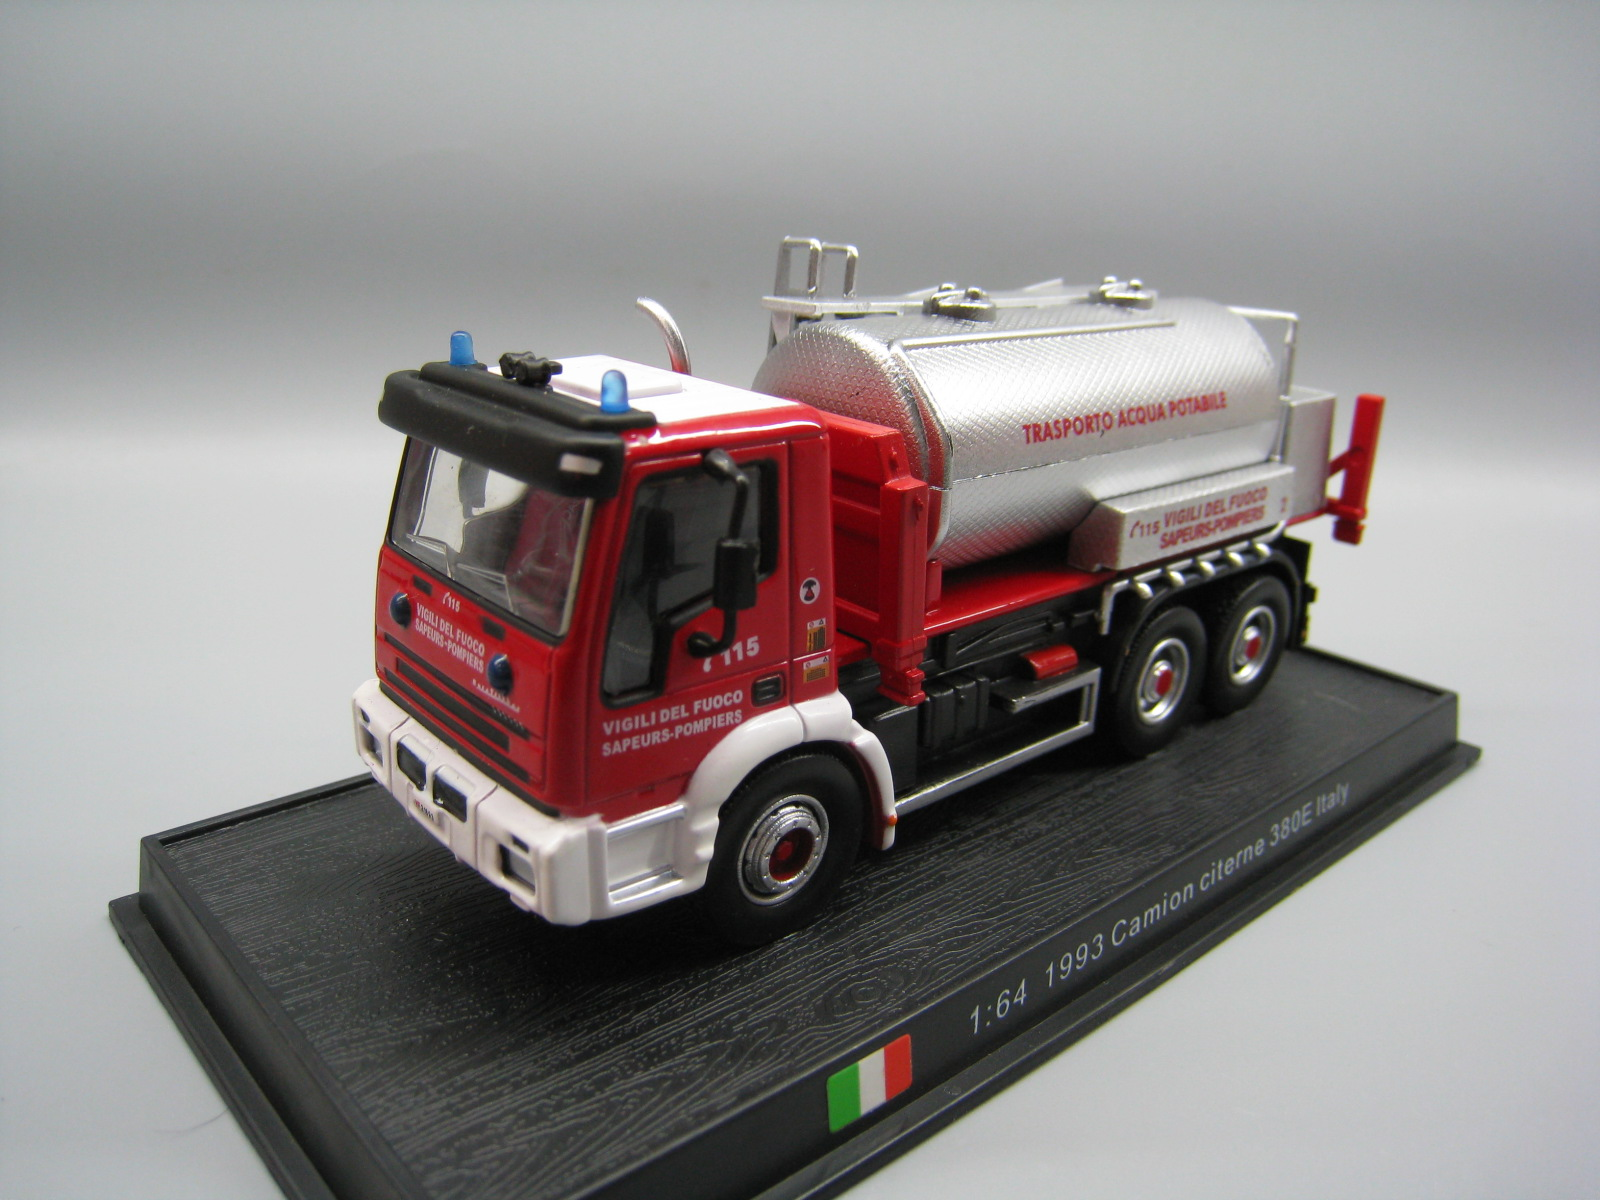 AMER 1/64 Scale Car Model Italy 1993 CAMION CITERNE 380E Fire Engine Diecast Metal Truck Model Toy For Collection,Gift,Kids